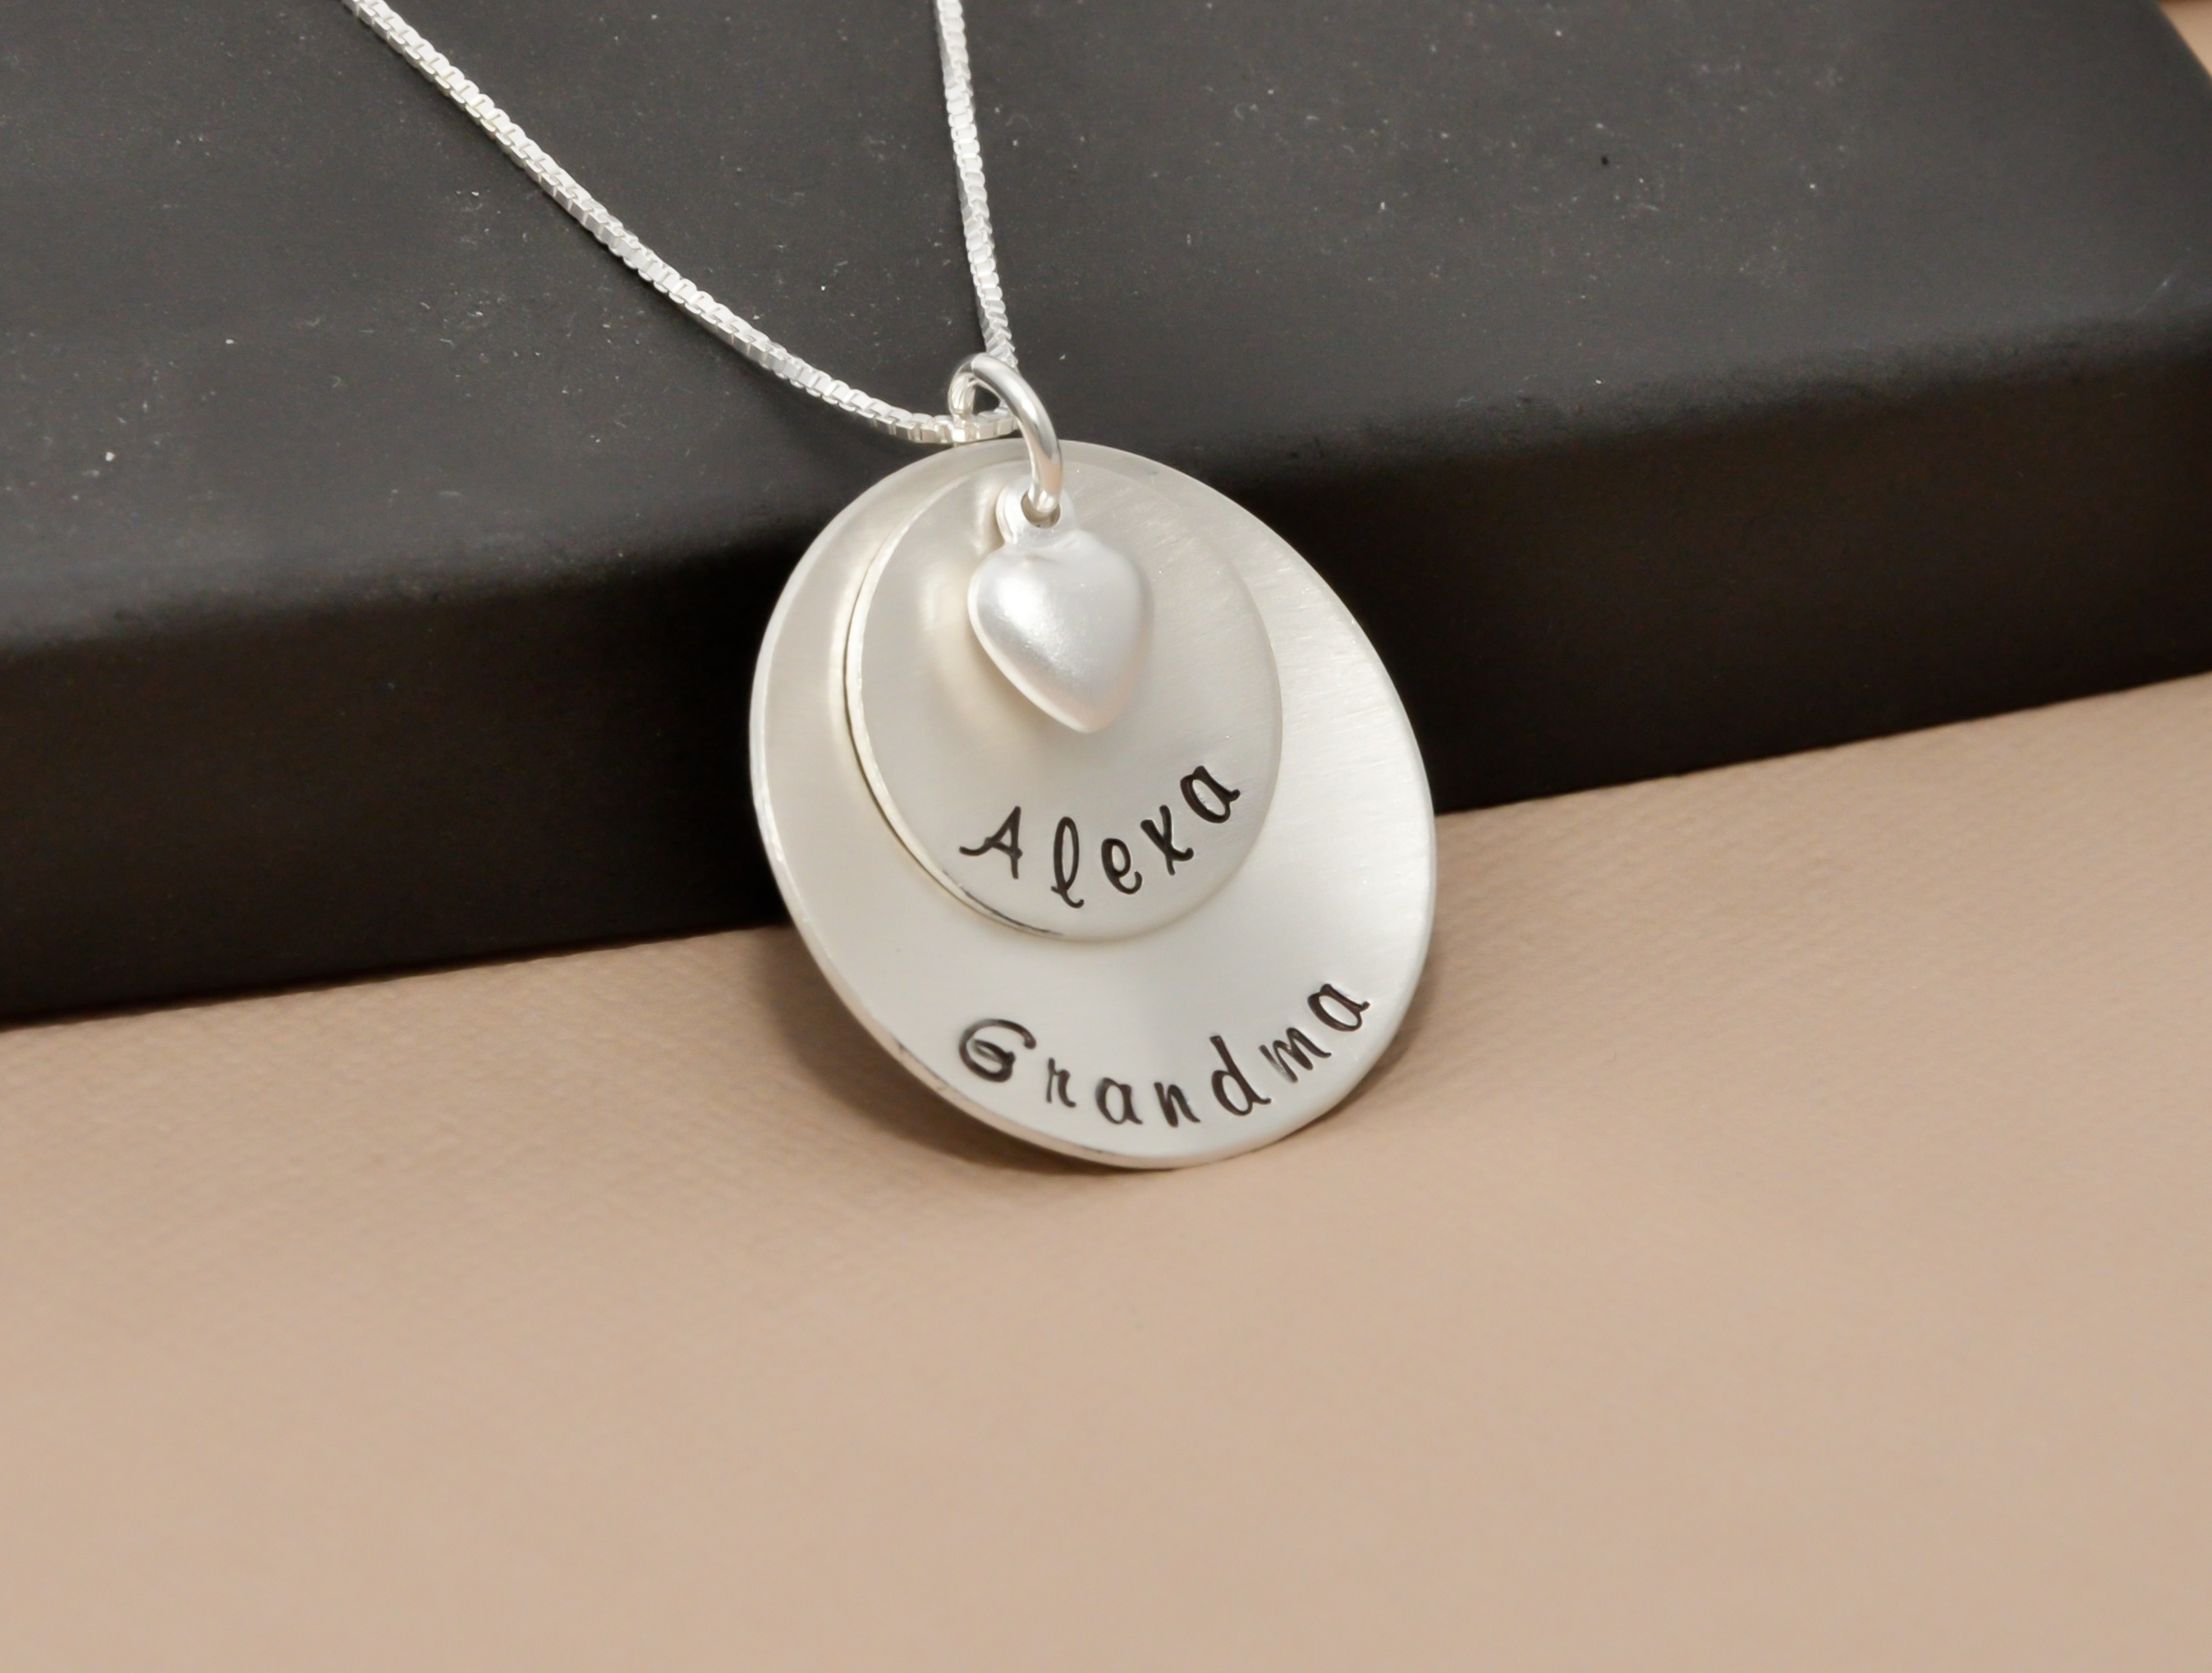 jewelry hand heart personalized il stamped listing osox necklace pewter pendant fullxfull